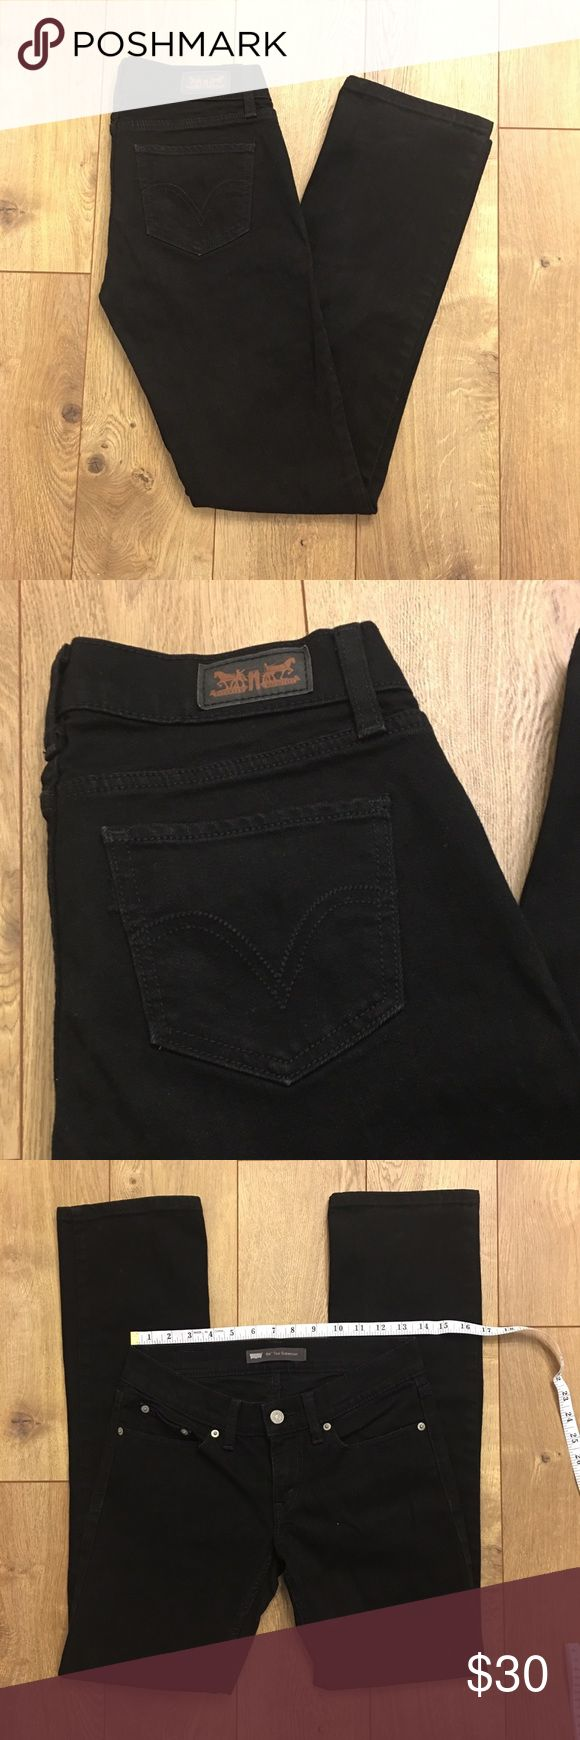 "Black Levi's 524 Too Superlow Jeans In great condition. The tag has been cut off but the size most closely resembles a 6M or 7M. Refer to measurements.   Measurements (approx) -  Hip- see pictures Ankle- see pictures  Inseam- 31""  Materials- See label in photos, (if one is not photographed it is because it has been cut off.)  Please comment with any questions--- Make me an offer! Levi's Jeans"